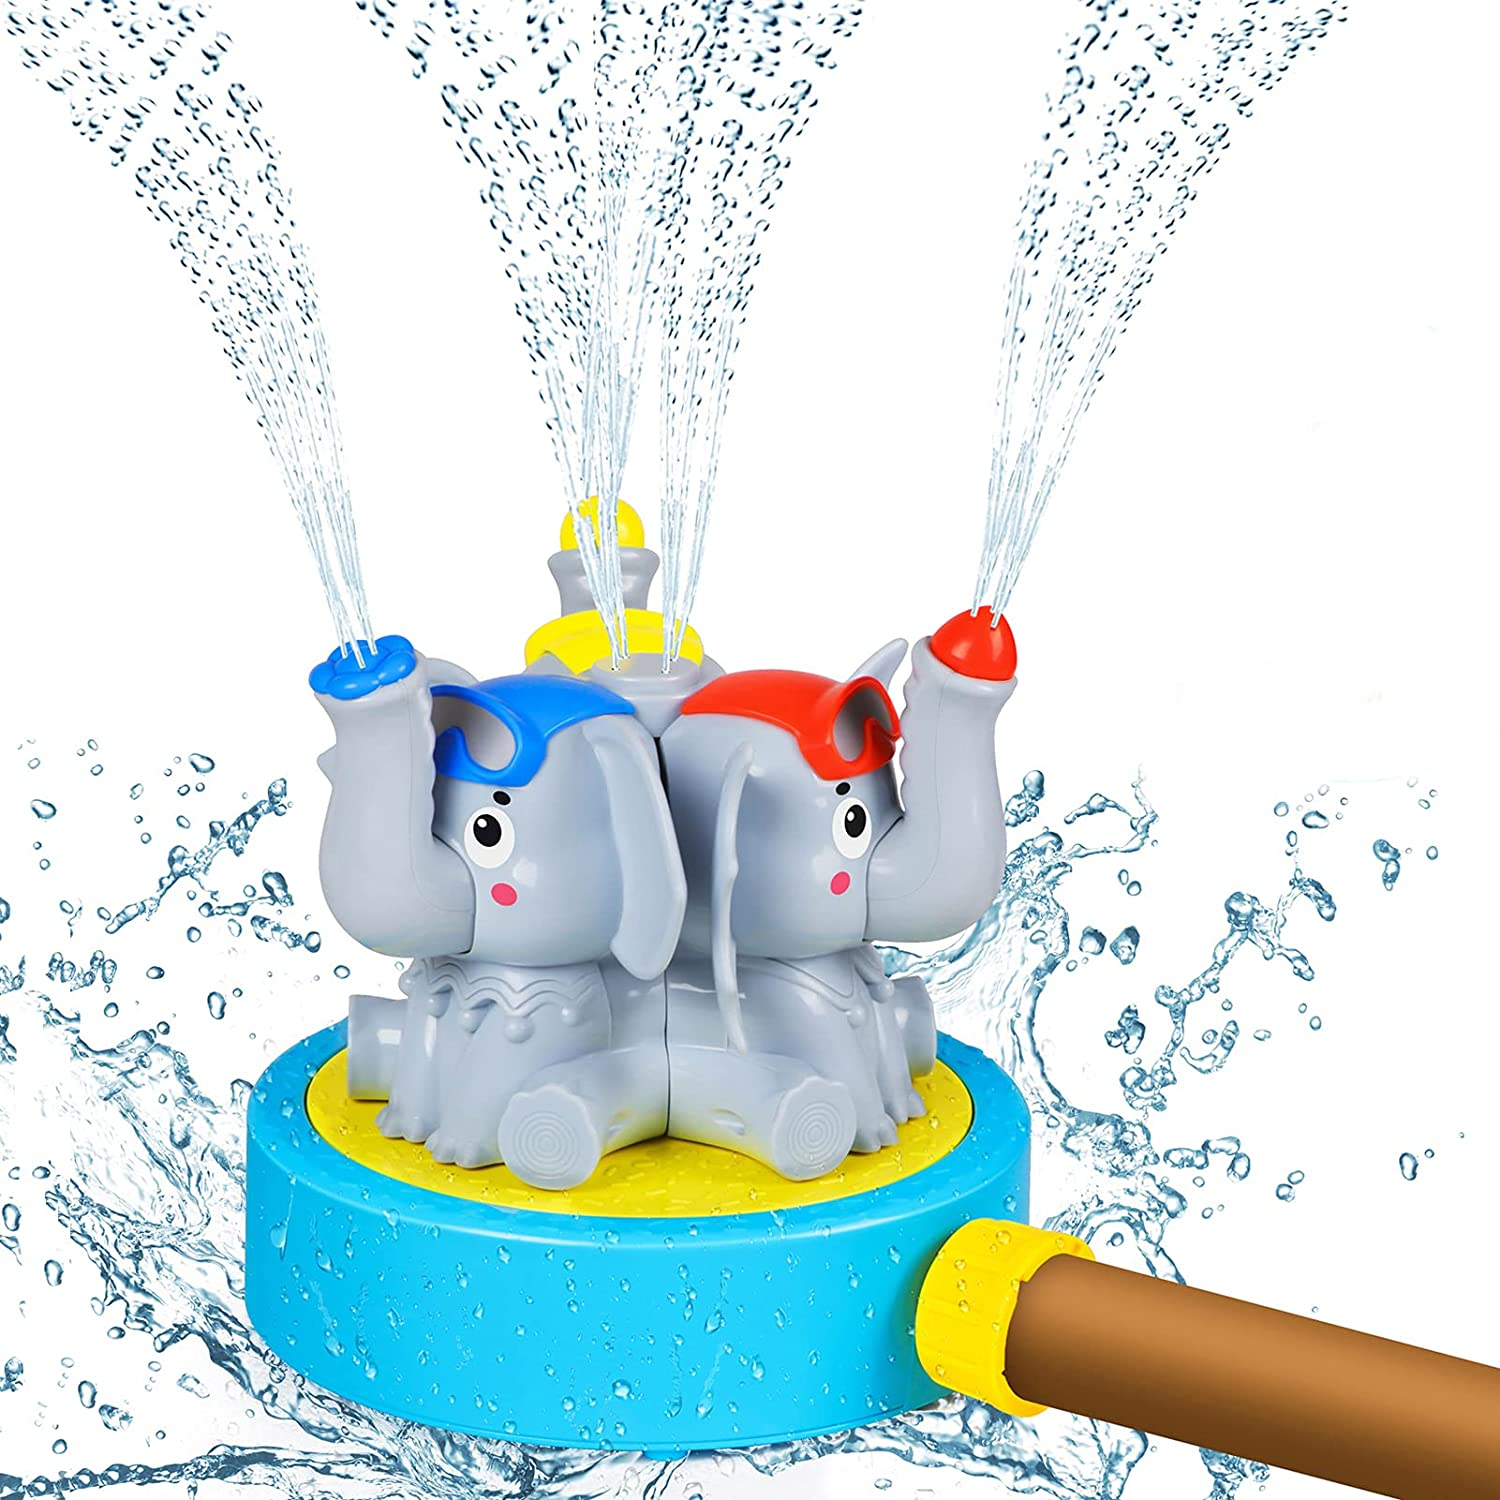 DX DA XIN Outdoor Water Play Sprinklers, Garden Water Spray Toys for Kids Toddlers Summer Backyard Elephant Sprinkler Toy Fix to Garden Hose Water Park for Gift Boys Girls Pets Plays Squirt Fun(Grey)